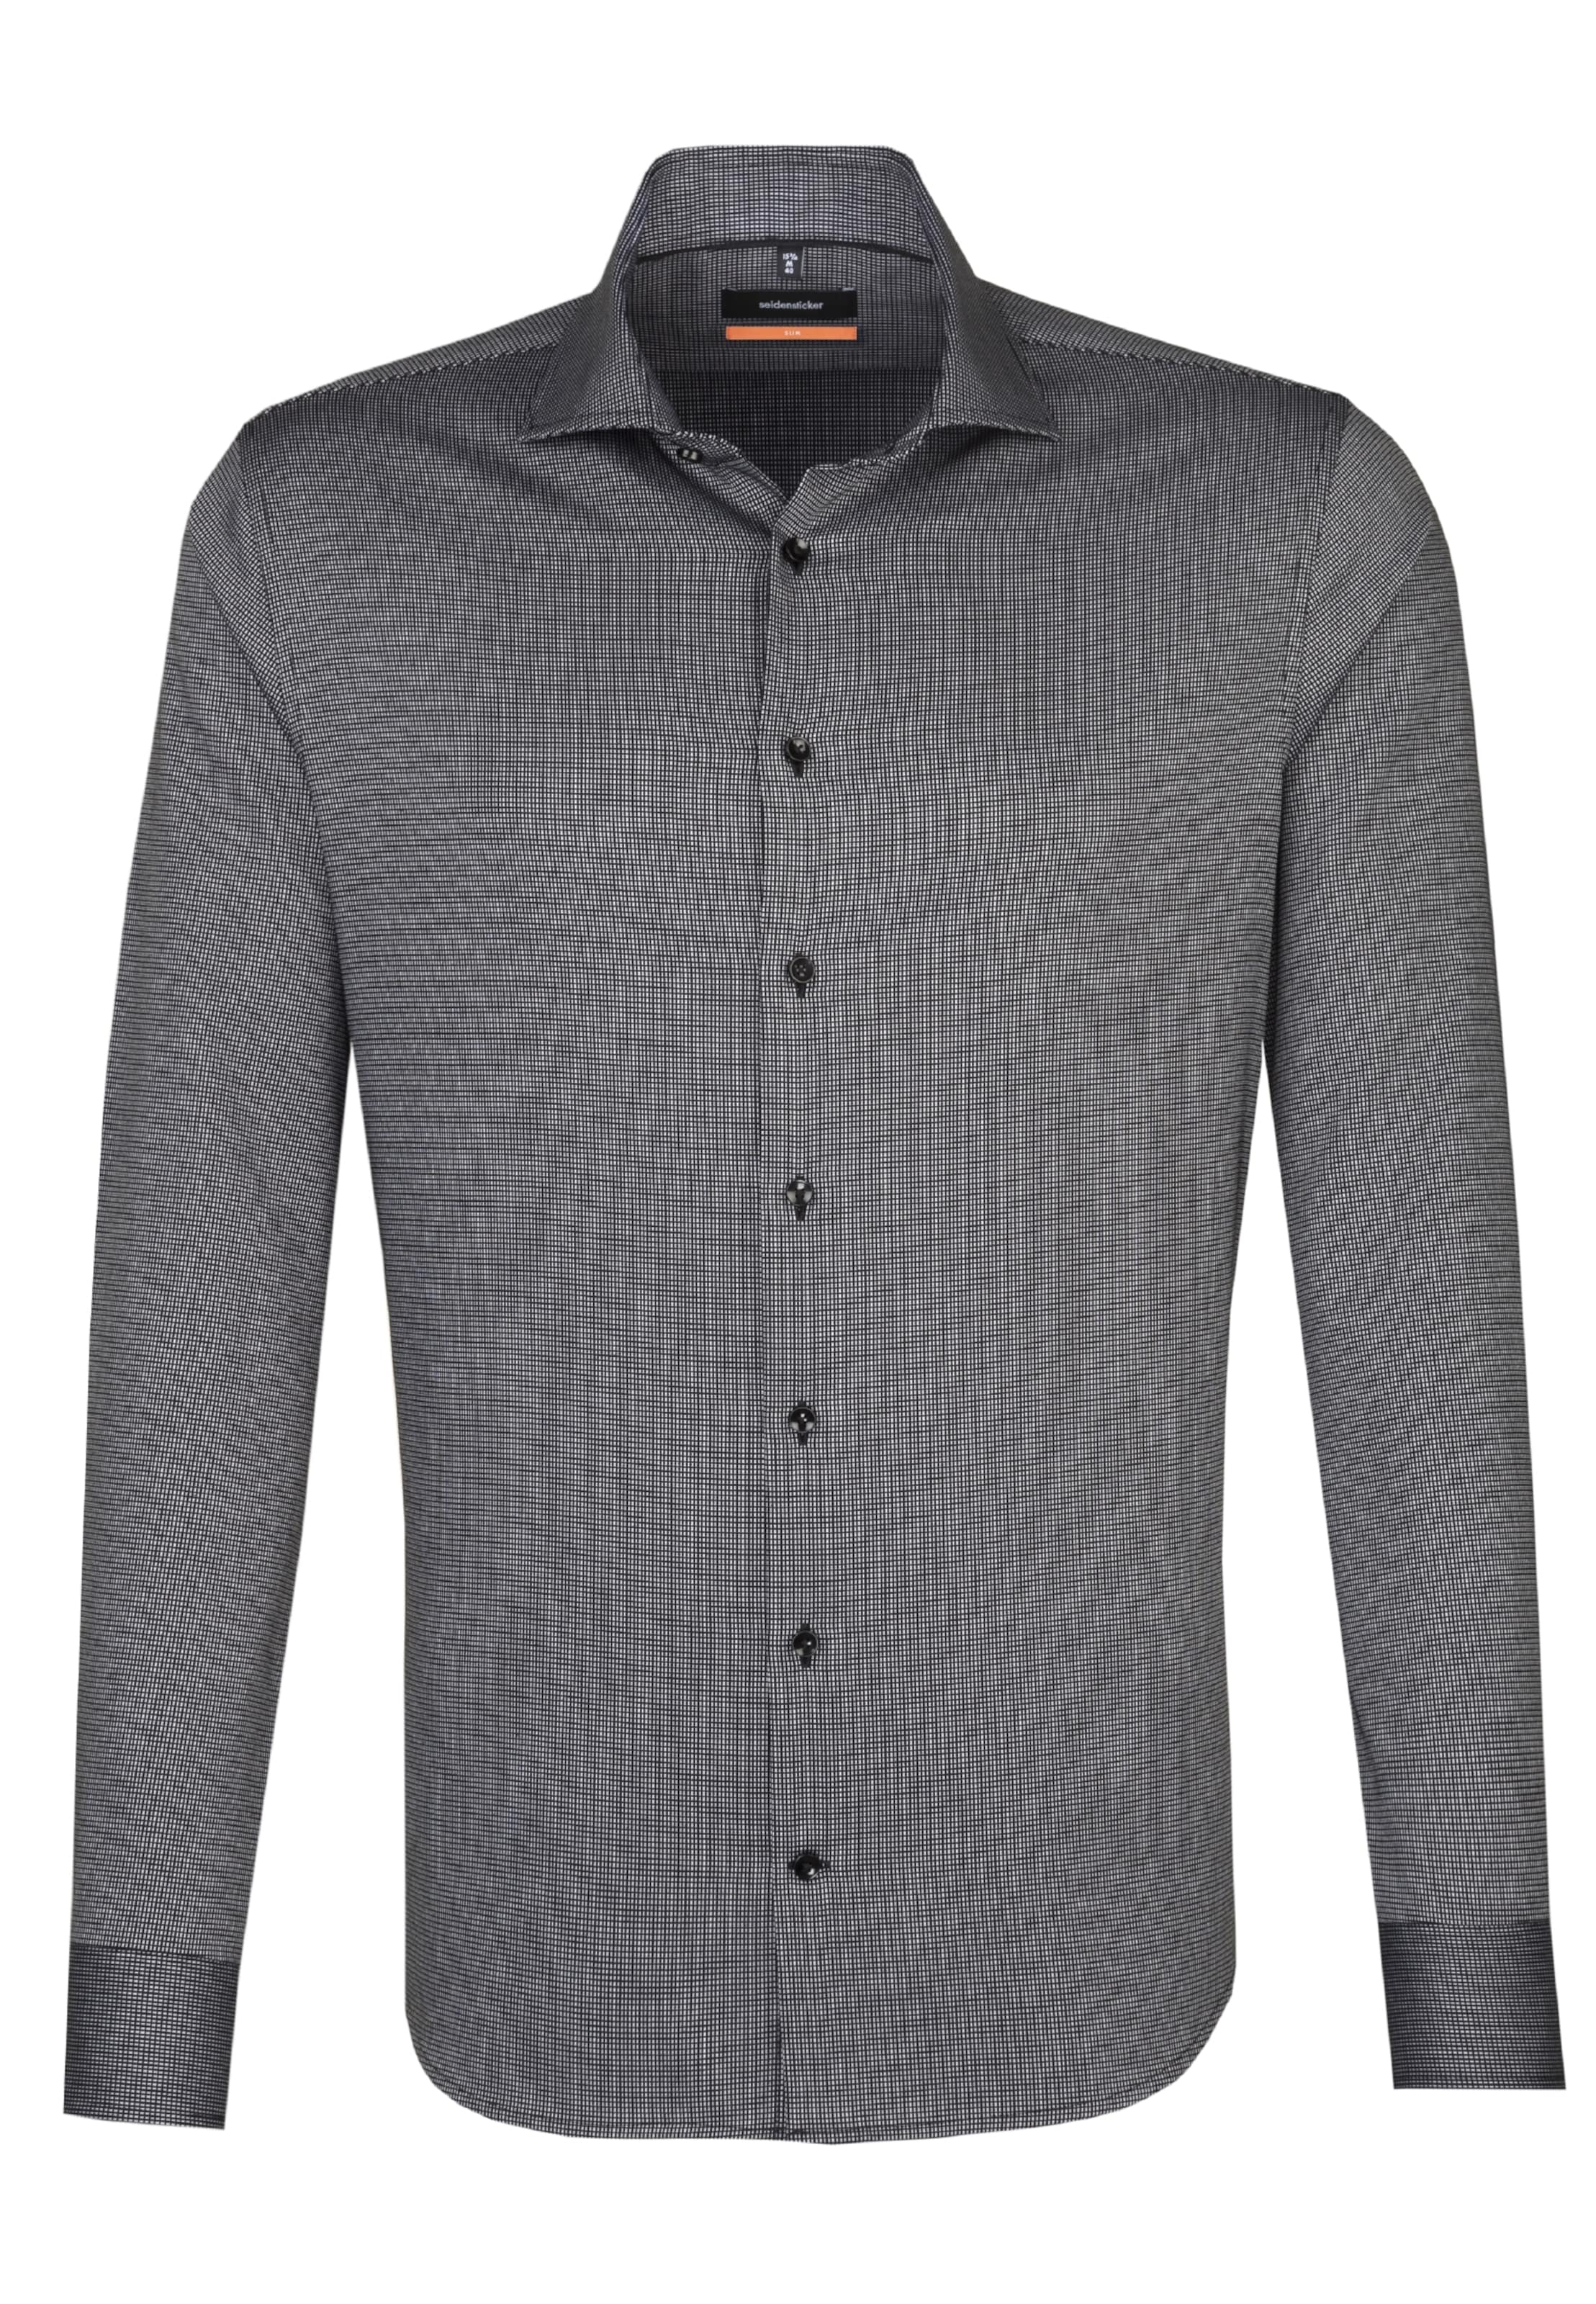 Seidensticker En Business 'slim' Chemise Anthracite TJc3FlK1